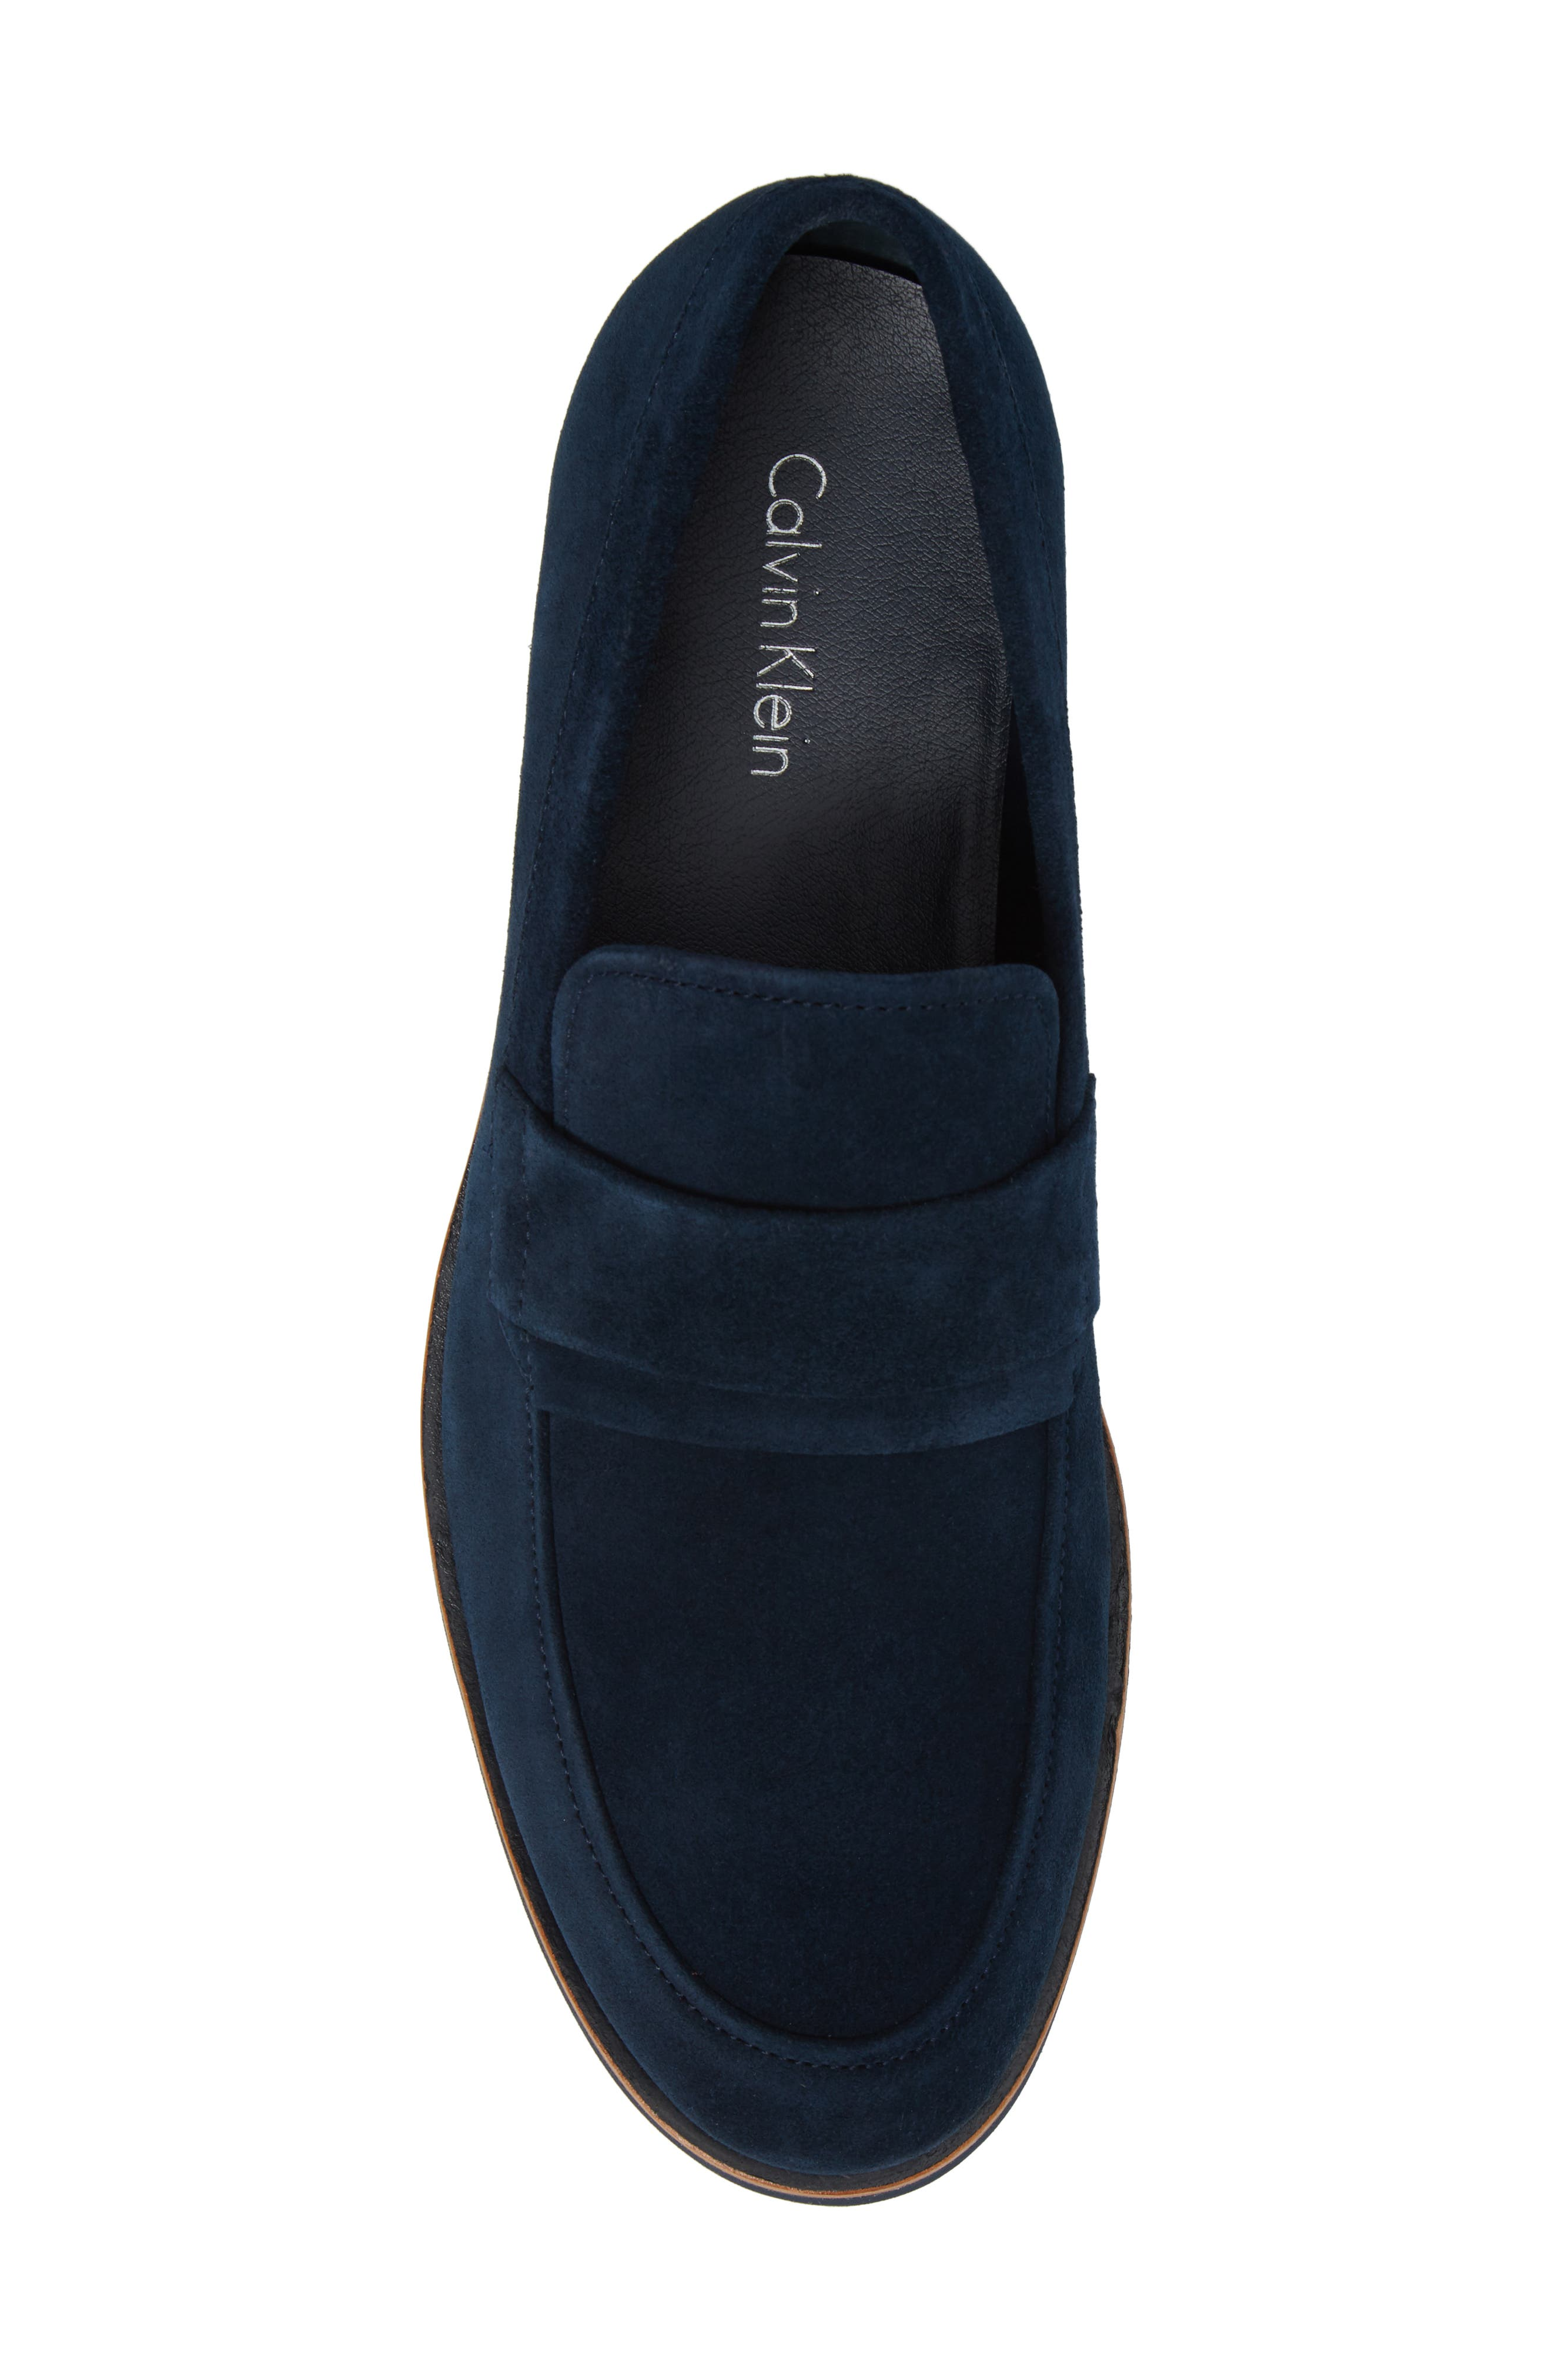 Forbes Loafer,                             Alternate thumbnail 15, color,